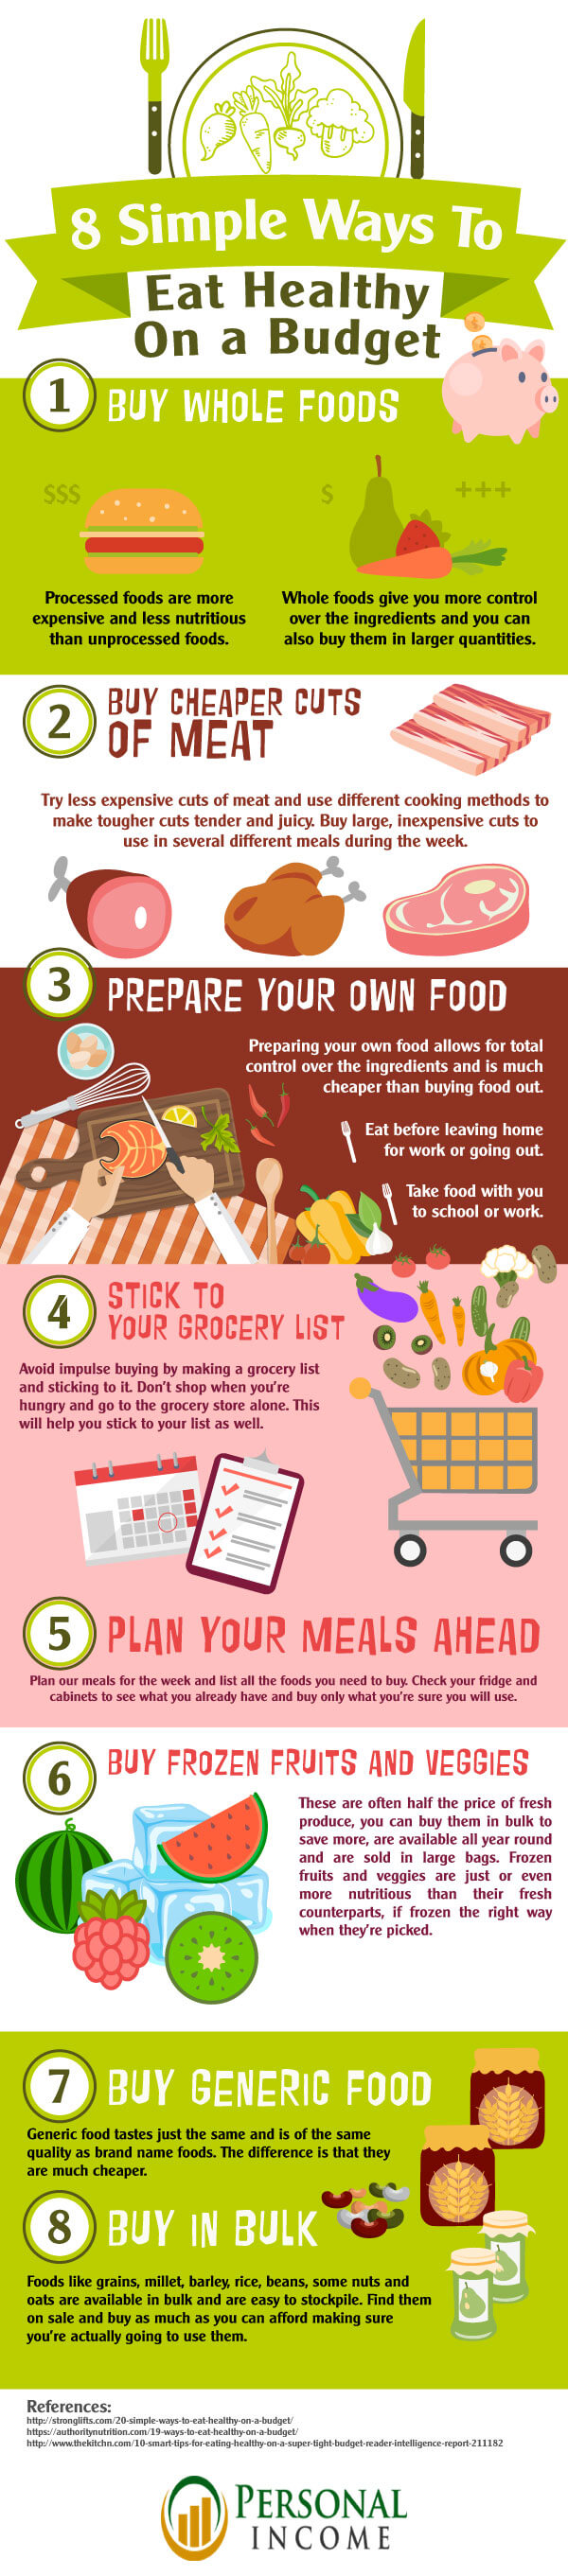 8-simple-ways-to-eat-healthy-on-a-budget